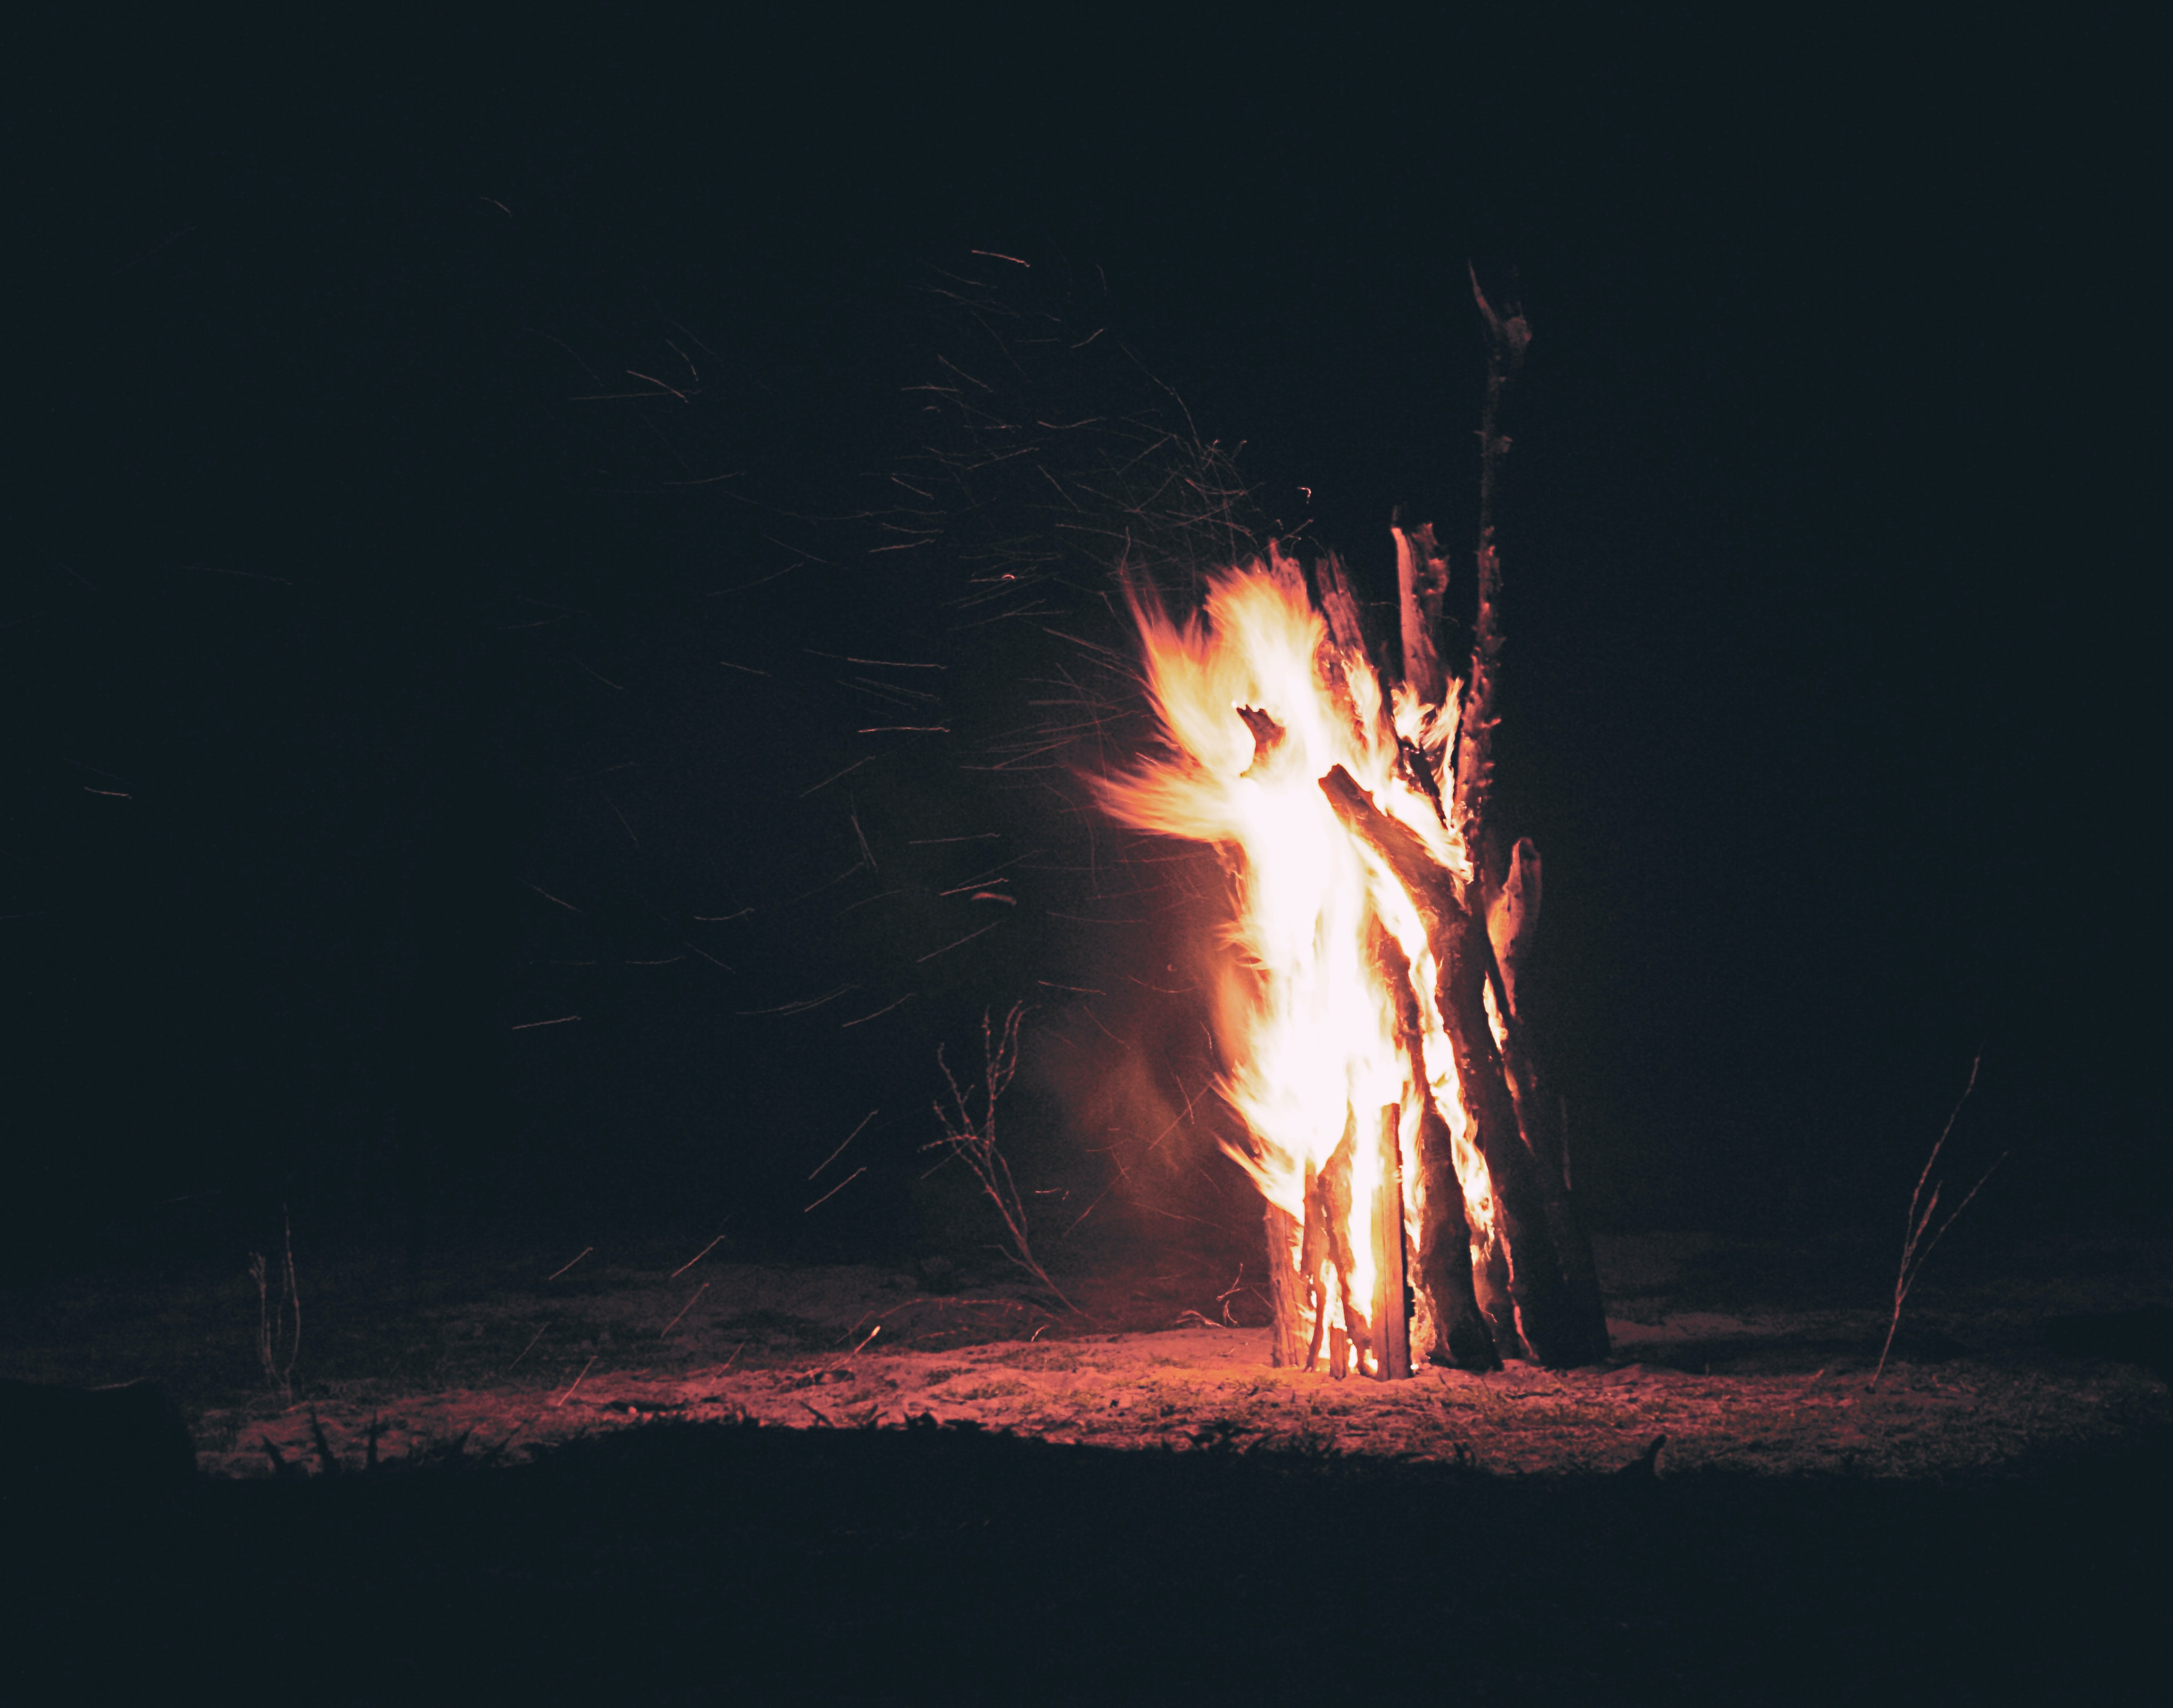 burning firewoods in the middle of deserted land